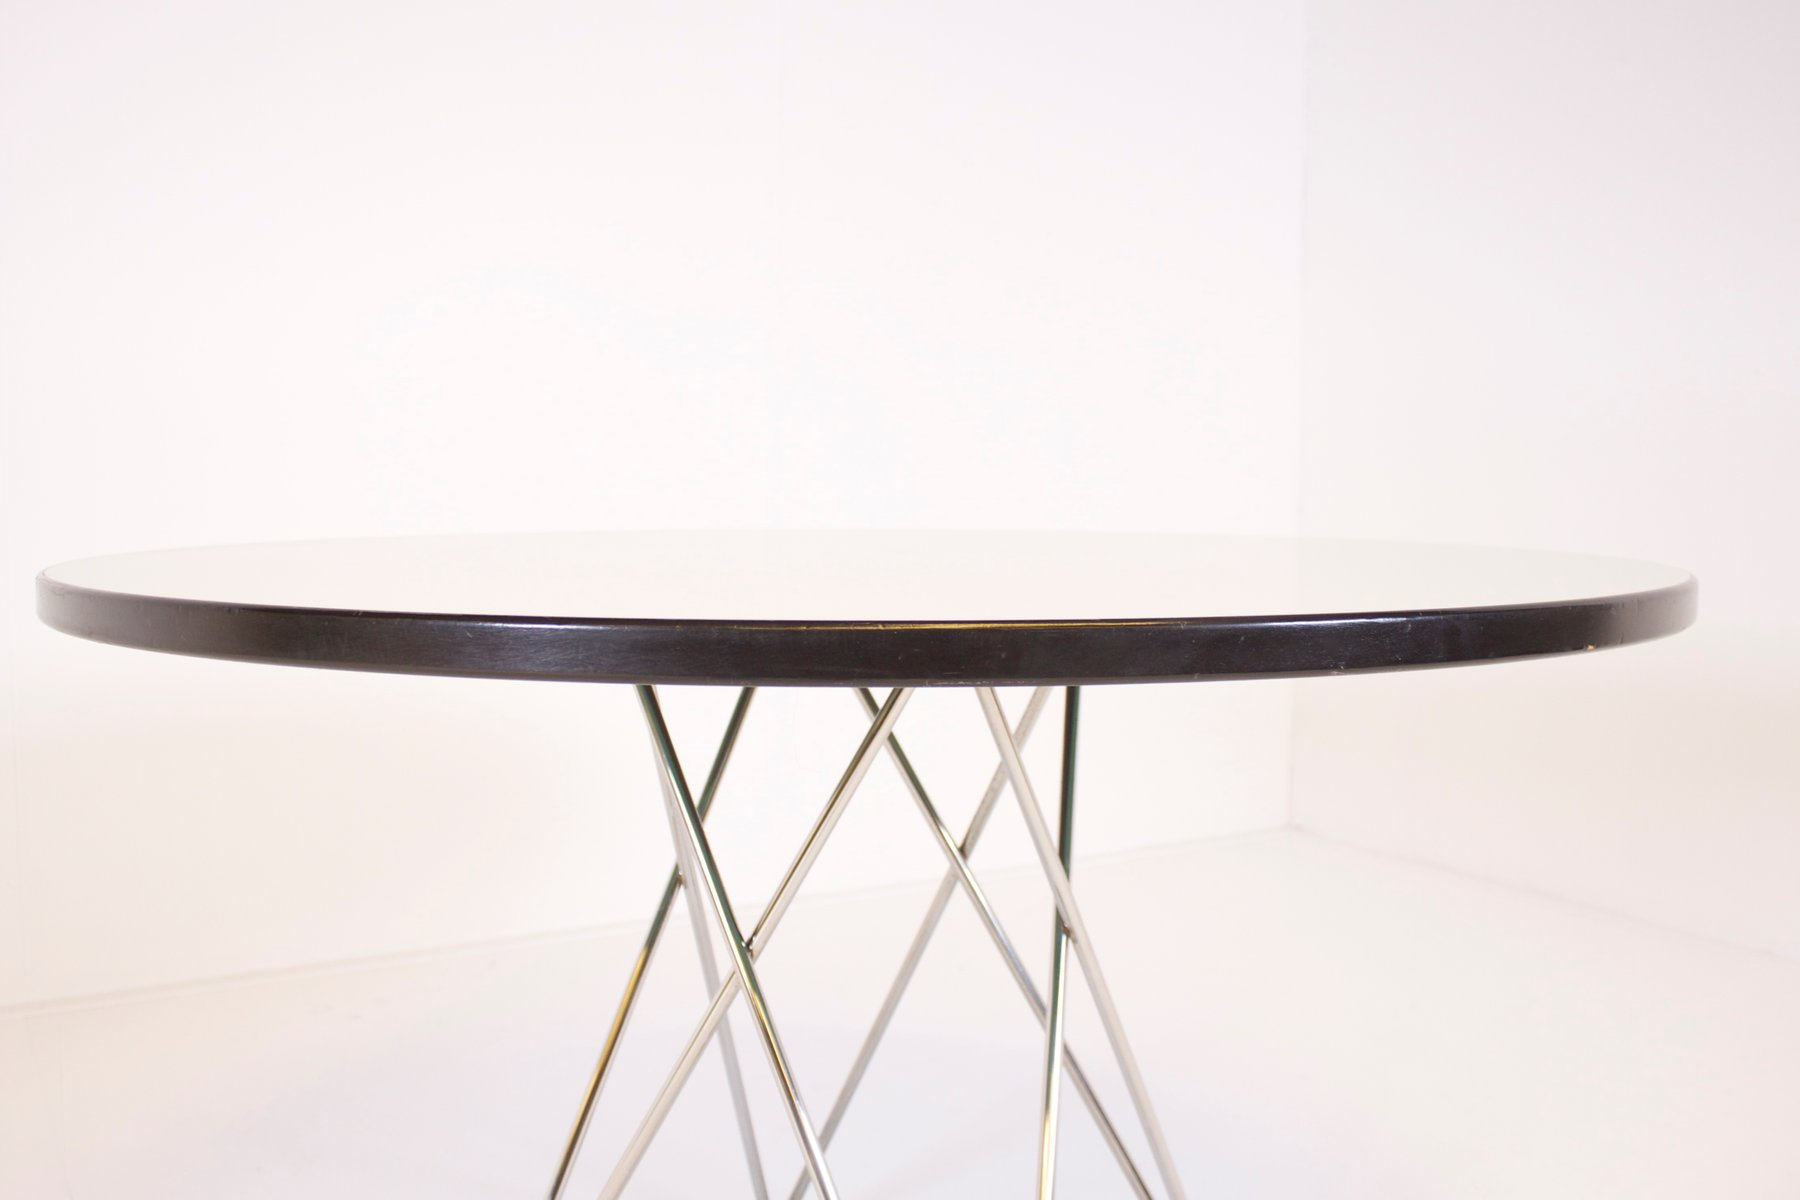 austrian formica and chrome dining table from thonet for sale at  - austrian formica and chrome dining table from thonet